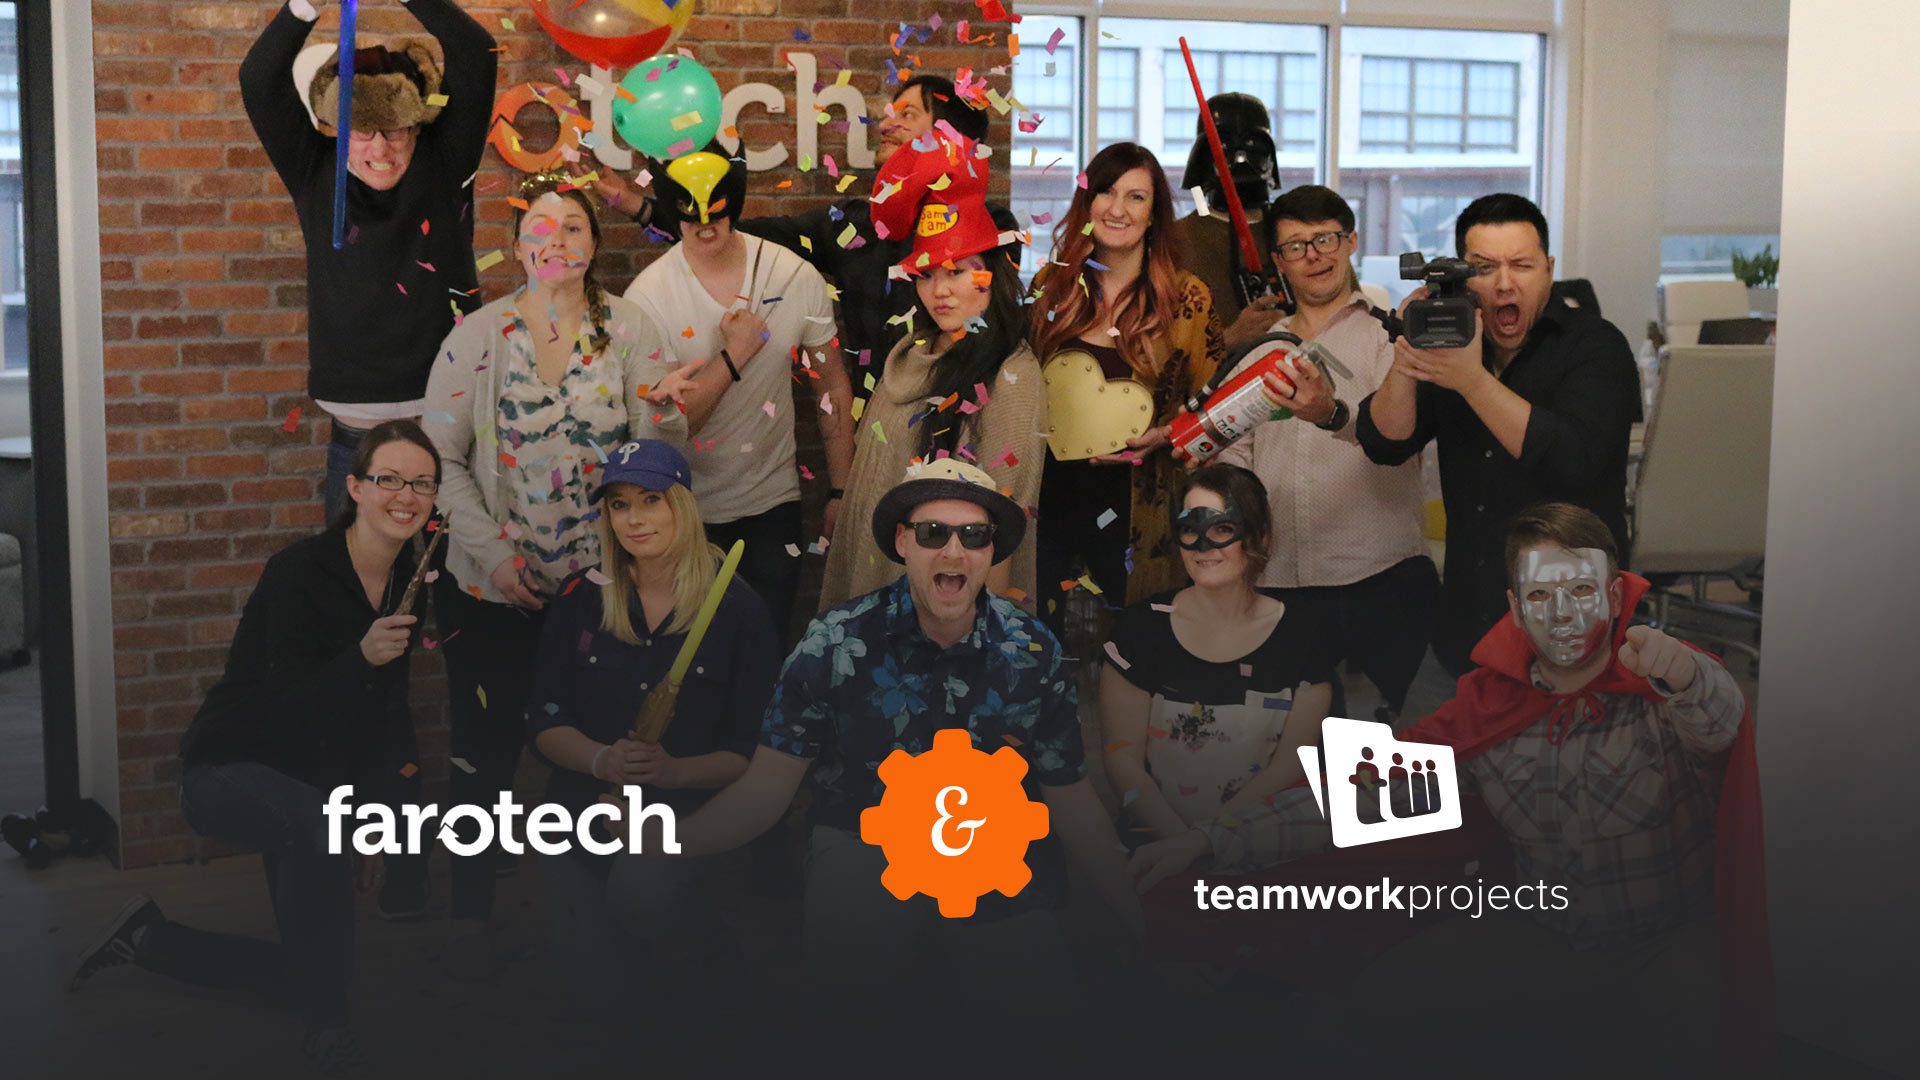 Farotech - Teamwork Projects Case Study